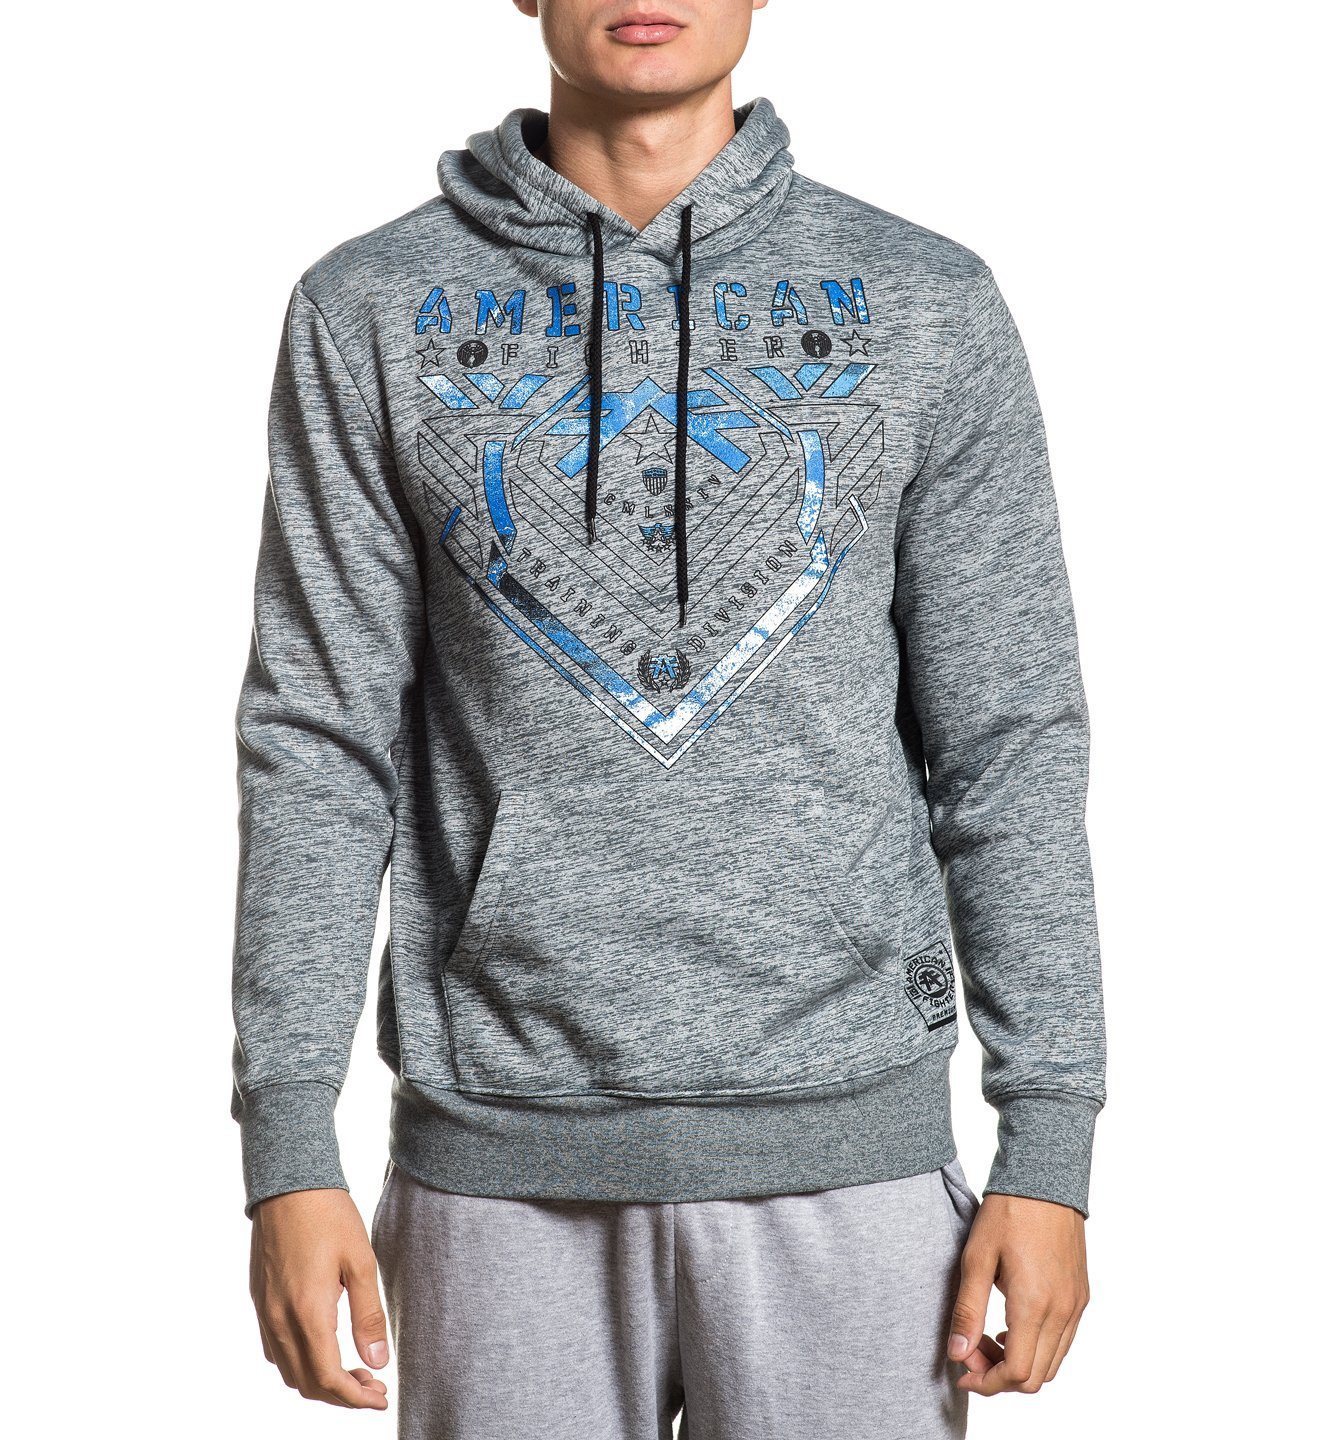 Parkside Ls Hood - Mens Hooded Sweatshirts - American Fighter